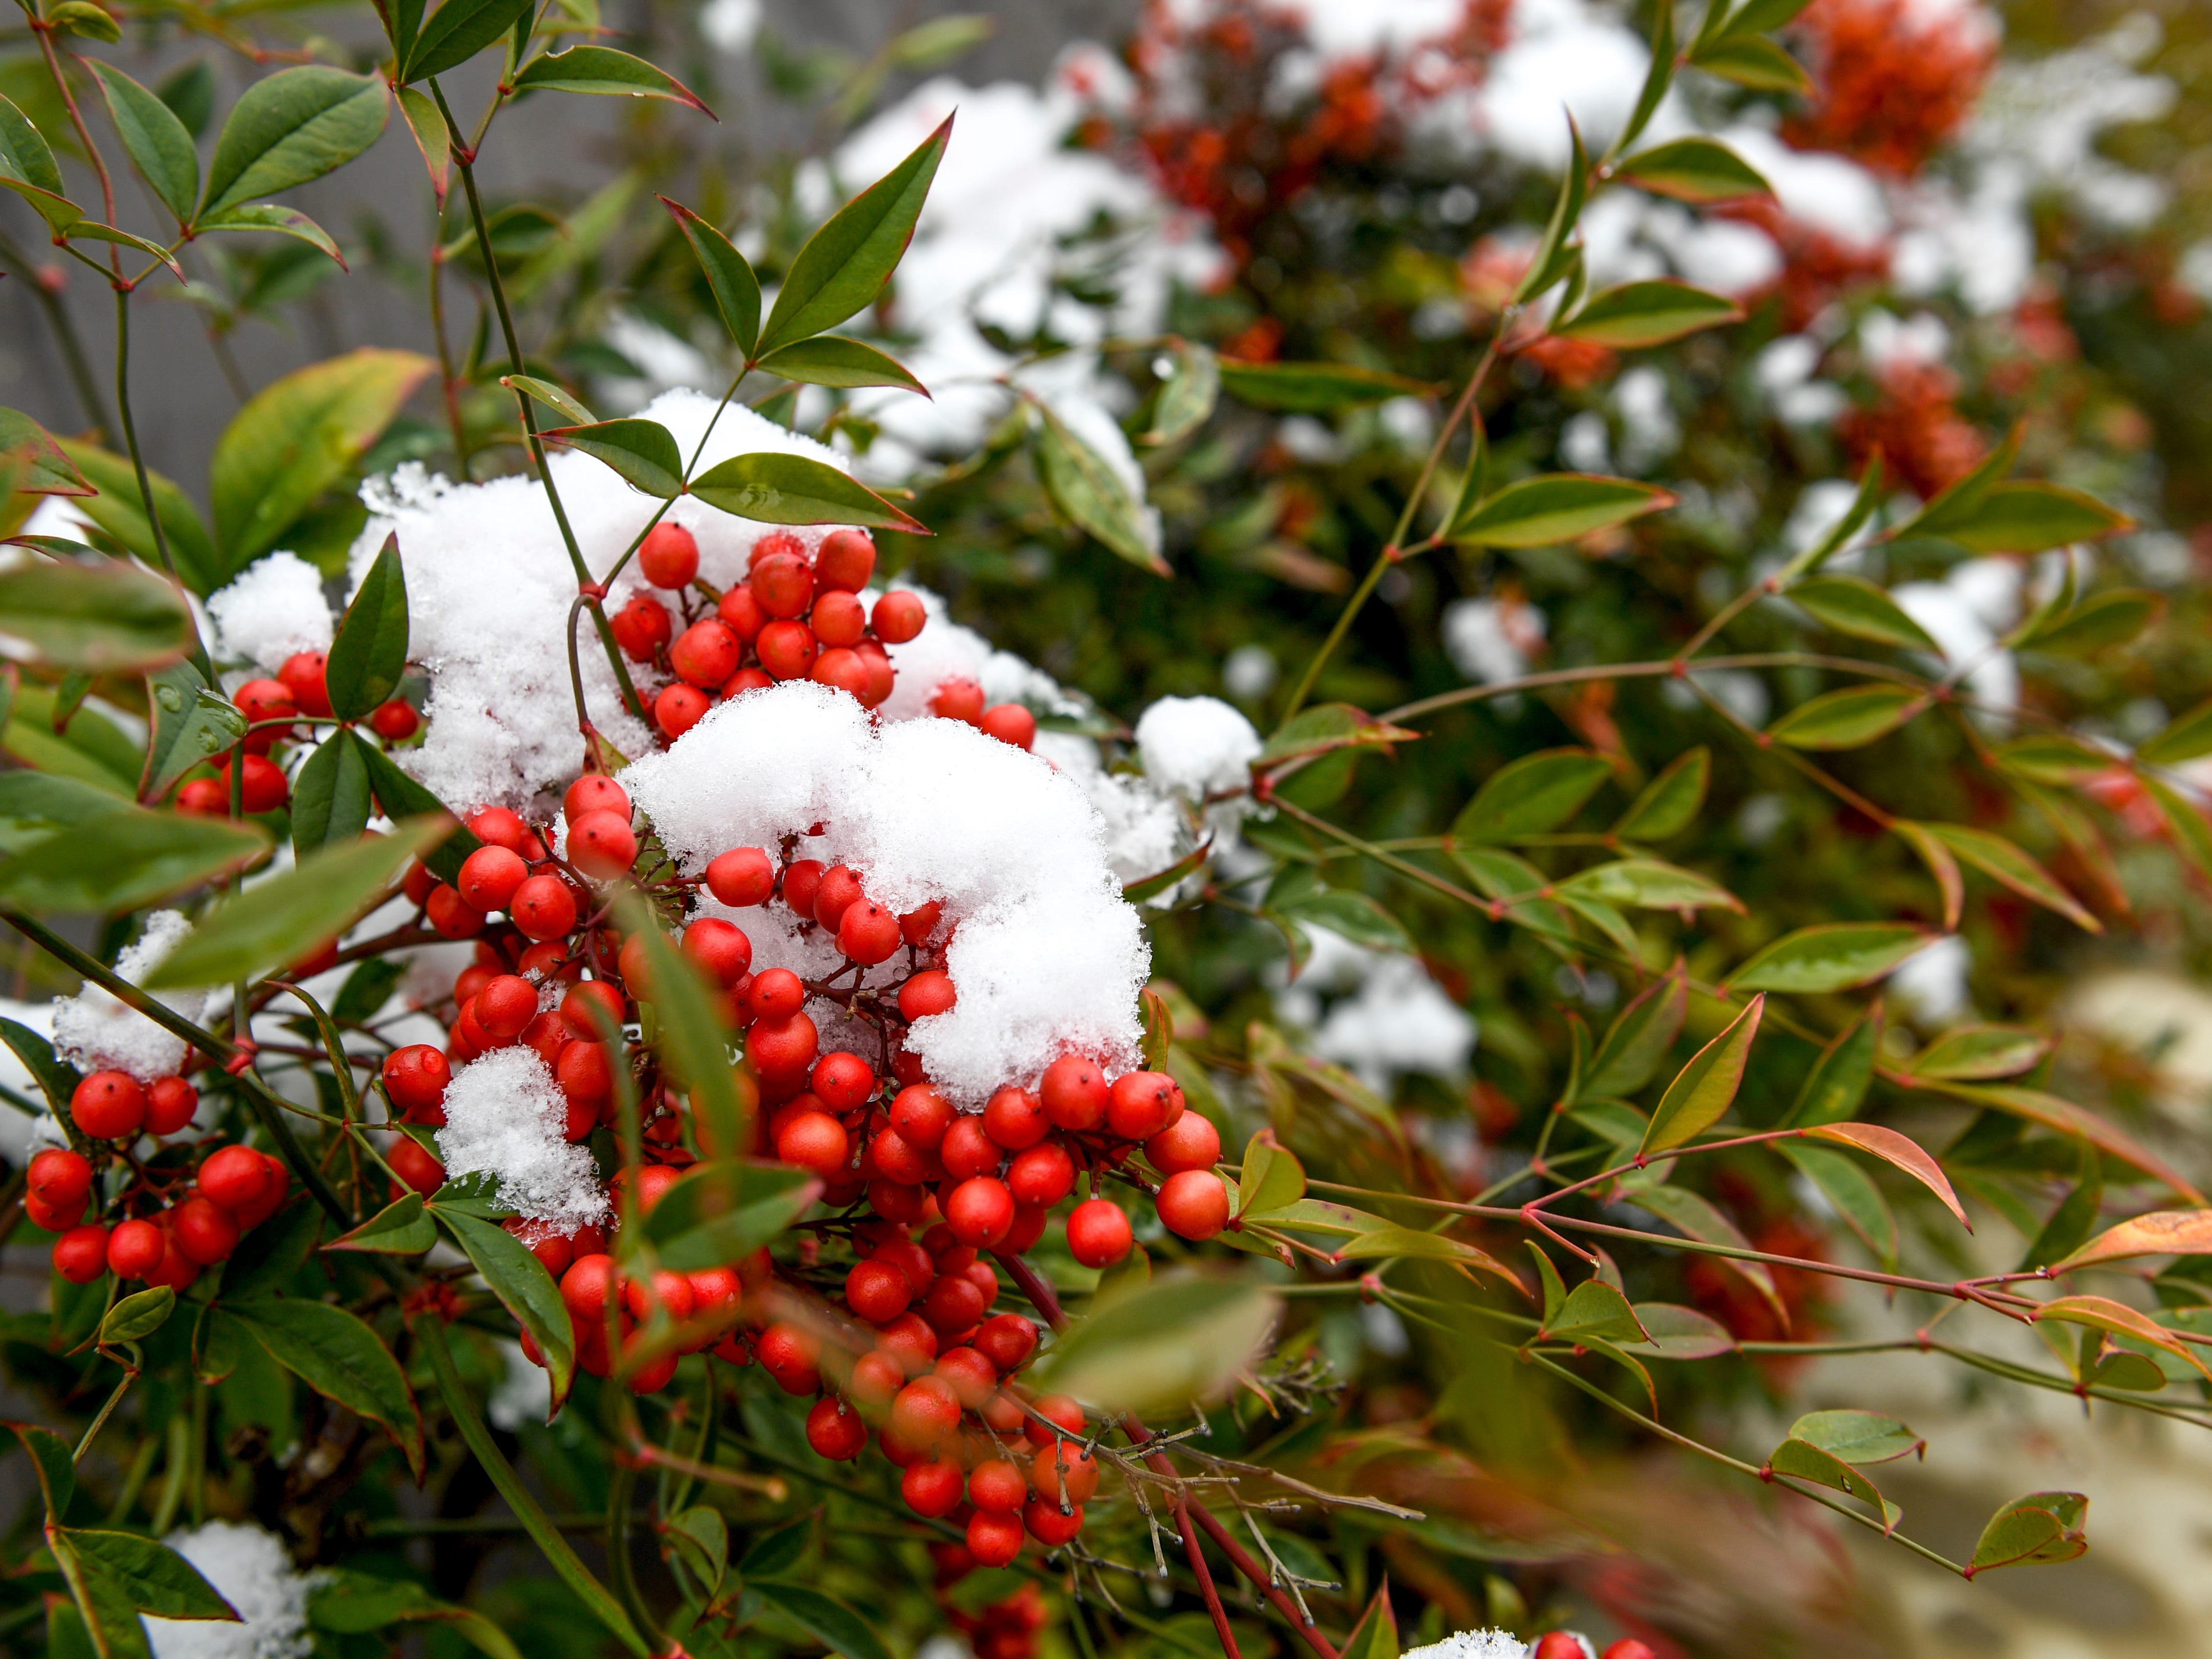 Red berries can be seen with a shelf of snow after an early snowfall coated scenes of late changing fall leaves, streets, and downtown with powdery snow in Jackson, Tenn., on Thursday, Nov. 15, 2018.